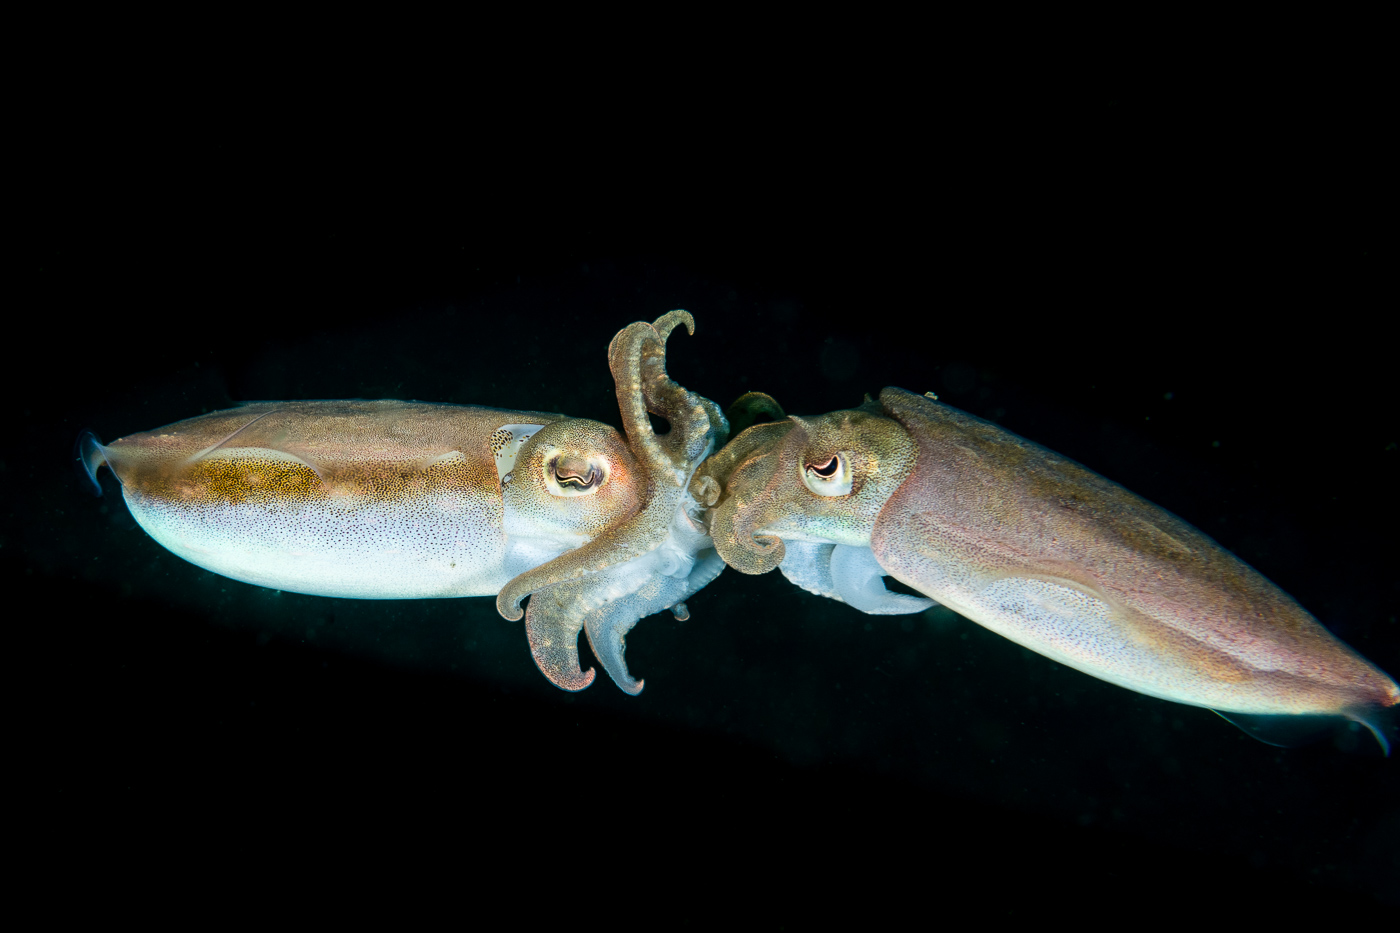 a new generation of cuttlefish coming